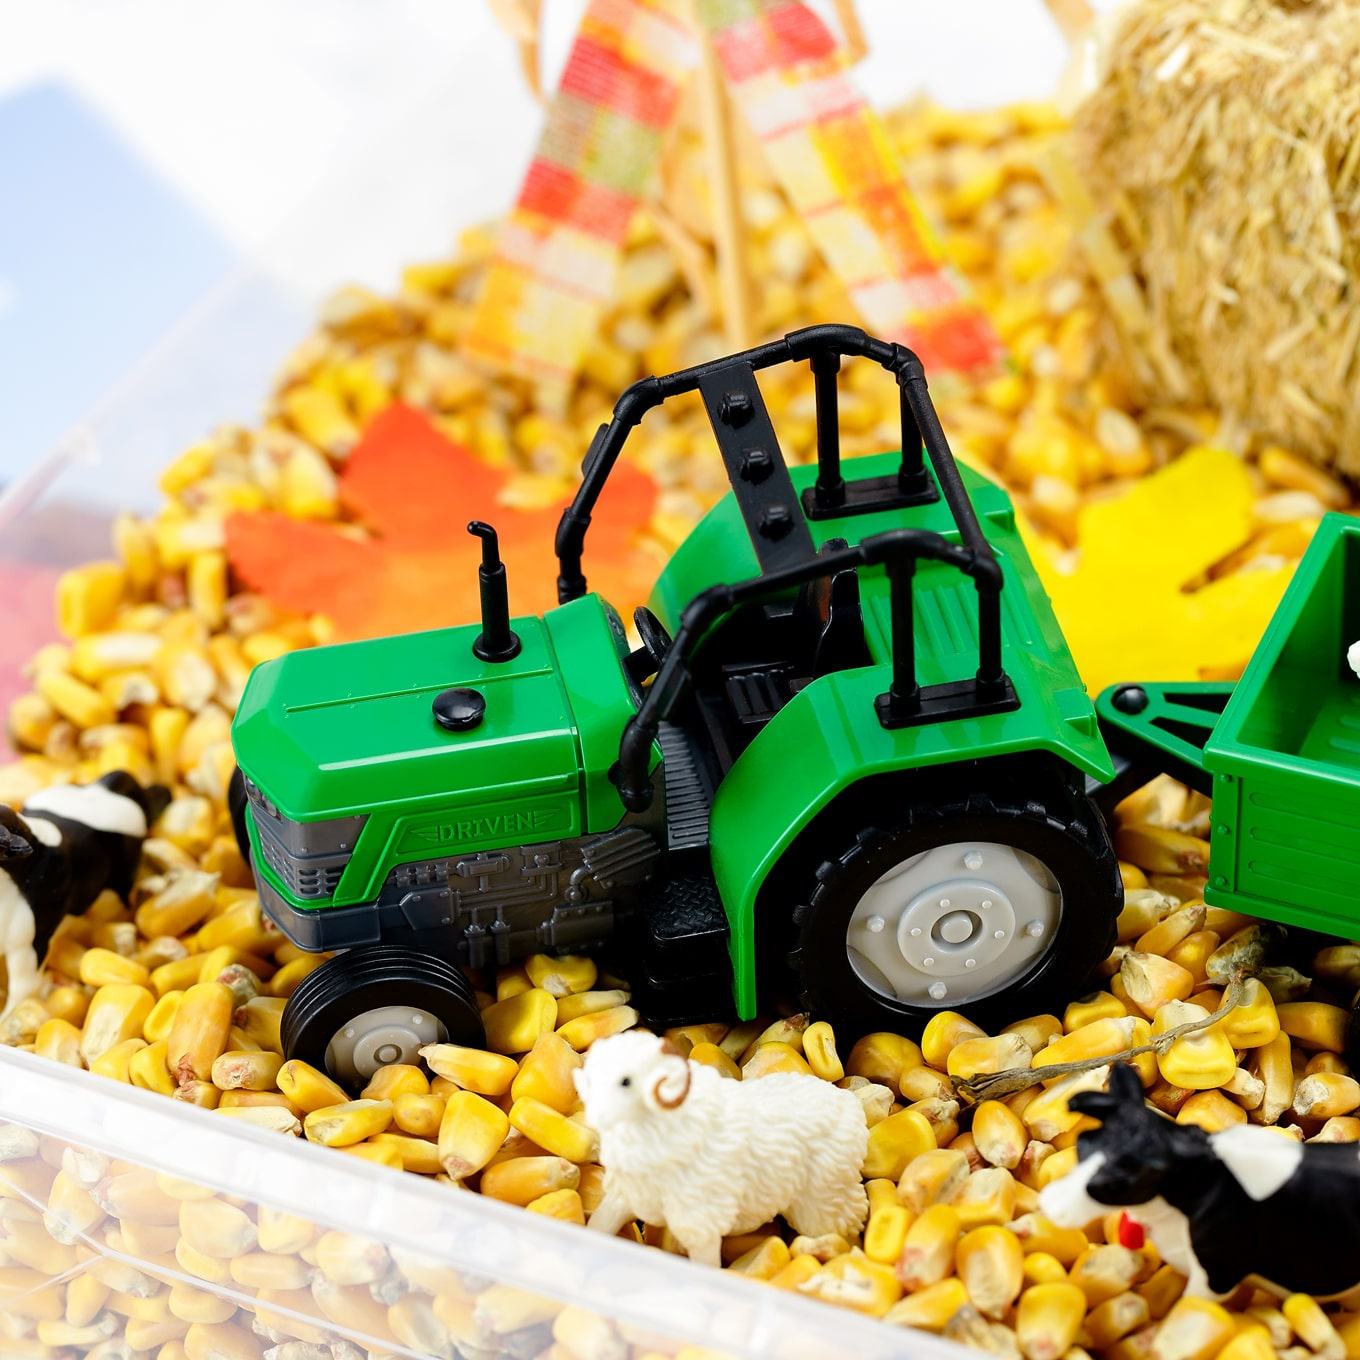 Toy Tractor in Corn Bin